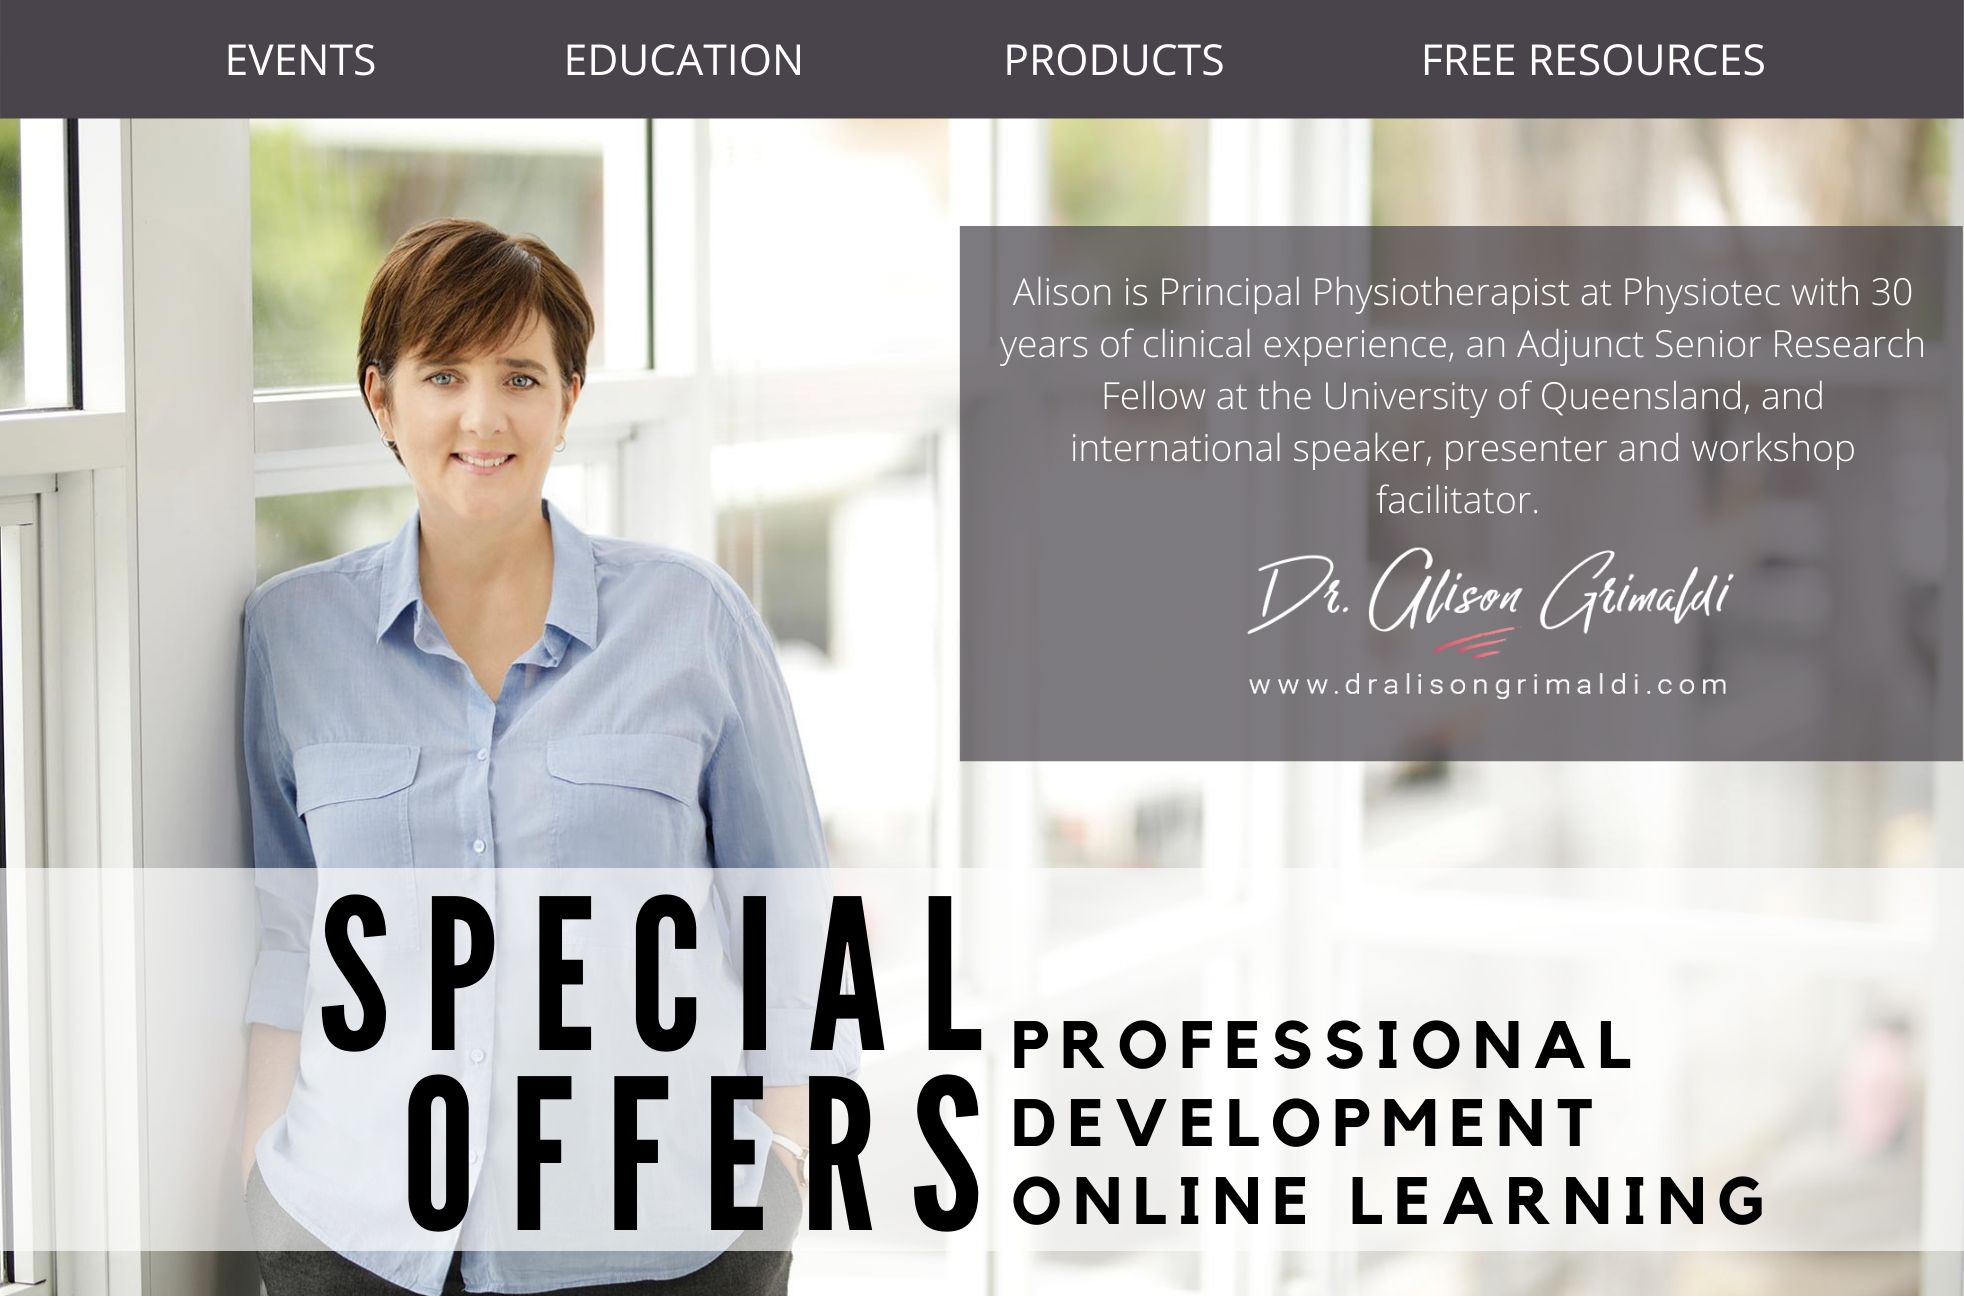 Receive discounts to online courses provided by Dr Alison Grimaldi